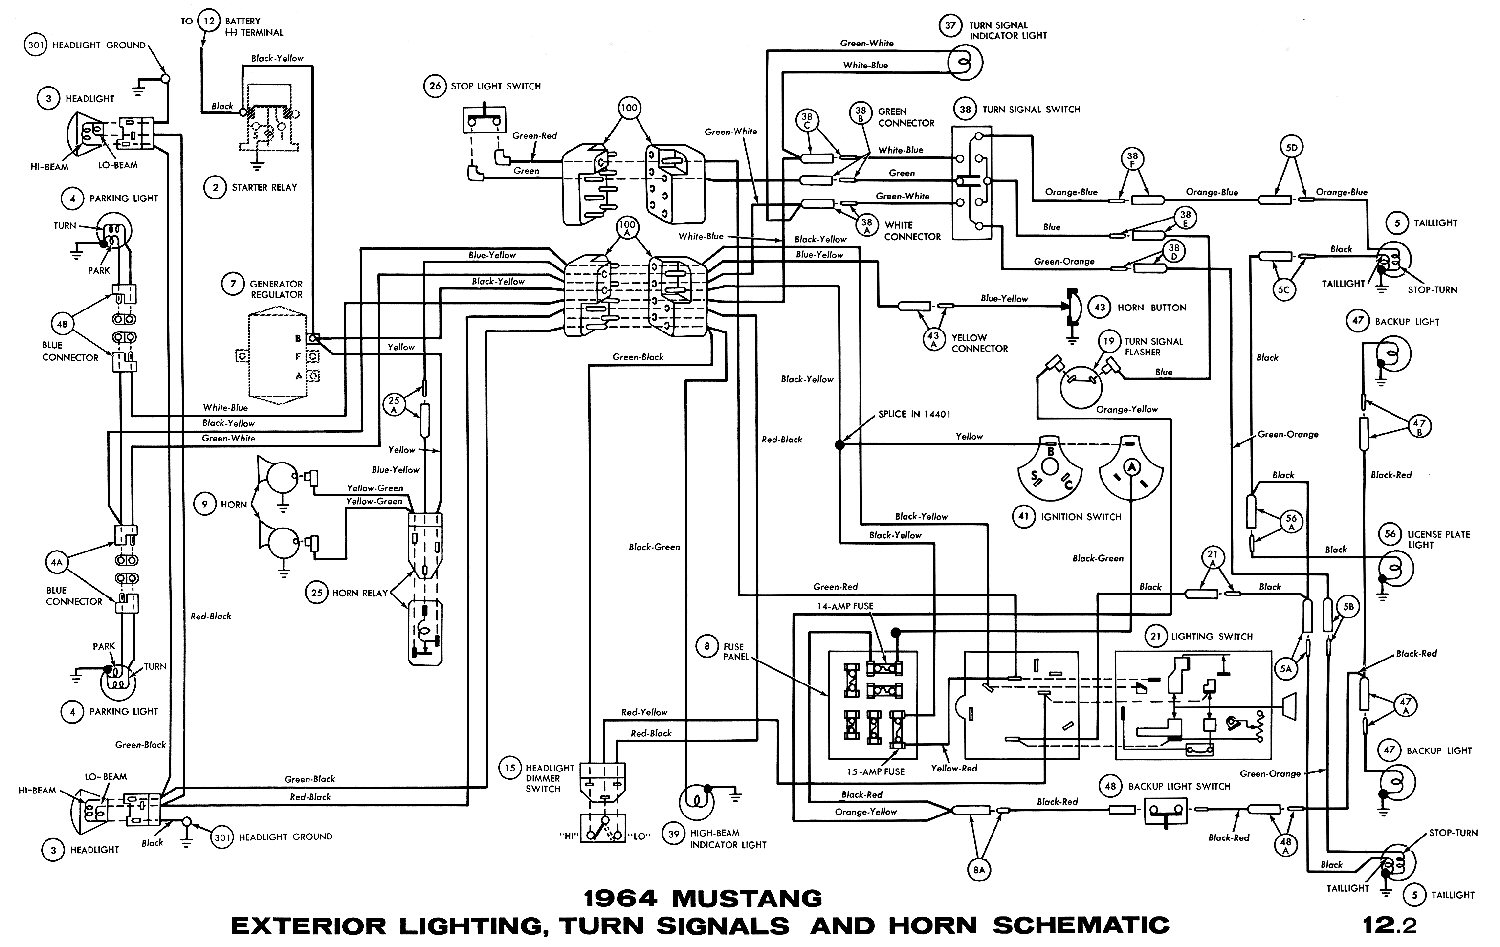 1976 Jeep Cj5 Ignition Wiring Diagram Library 1974 64 Mustang Experts Of U2022 Rh Evilcloud Co Uk 1982